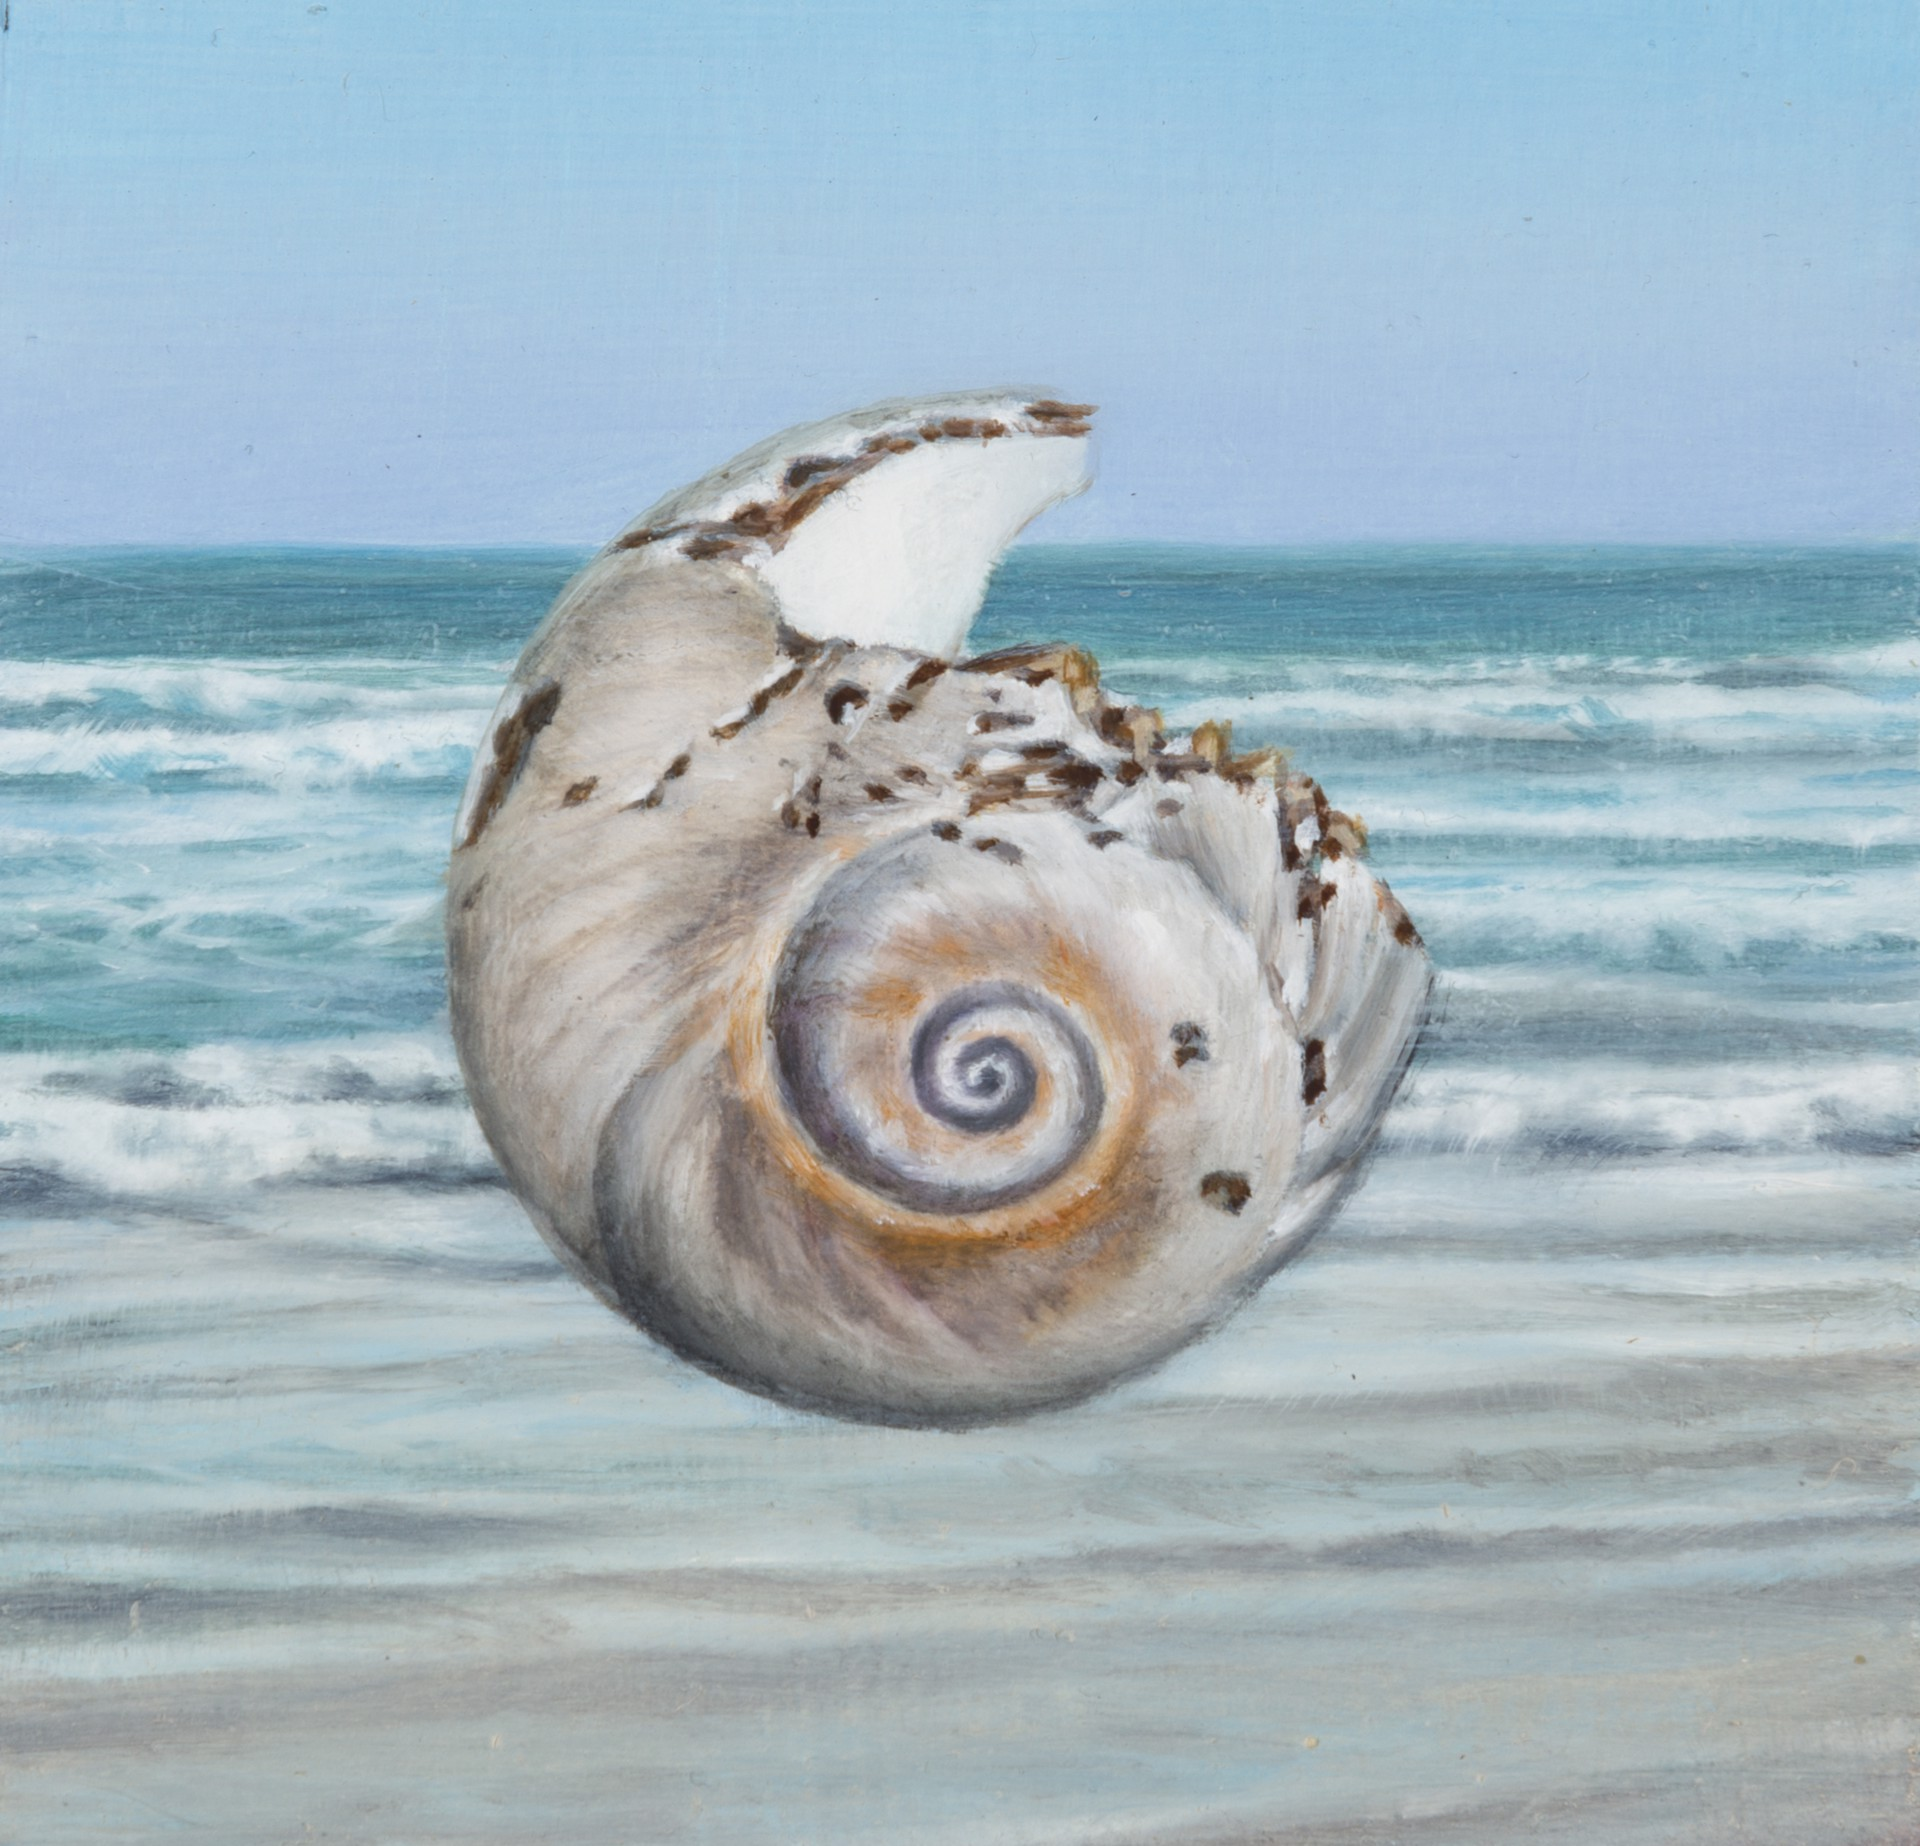 Shell 2 by Gregory Block